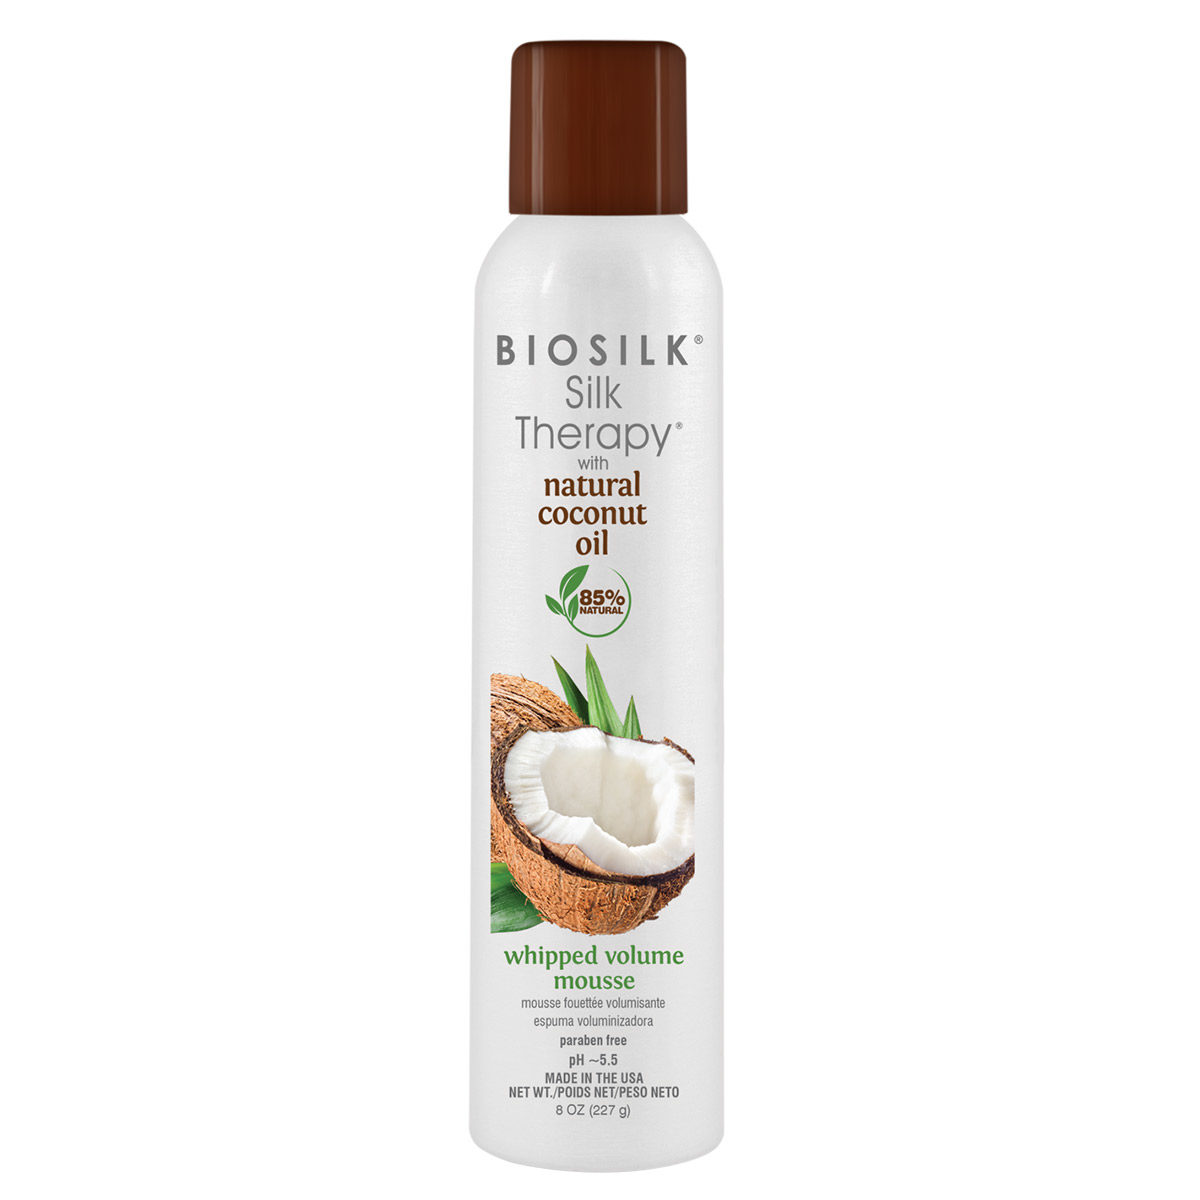 Biosilk--Silk-Therapy-with-Natural-Coconut-Oil-Whipped-Volume-Mousse-8oz